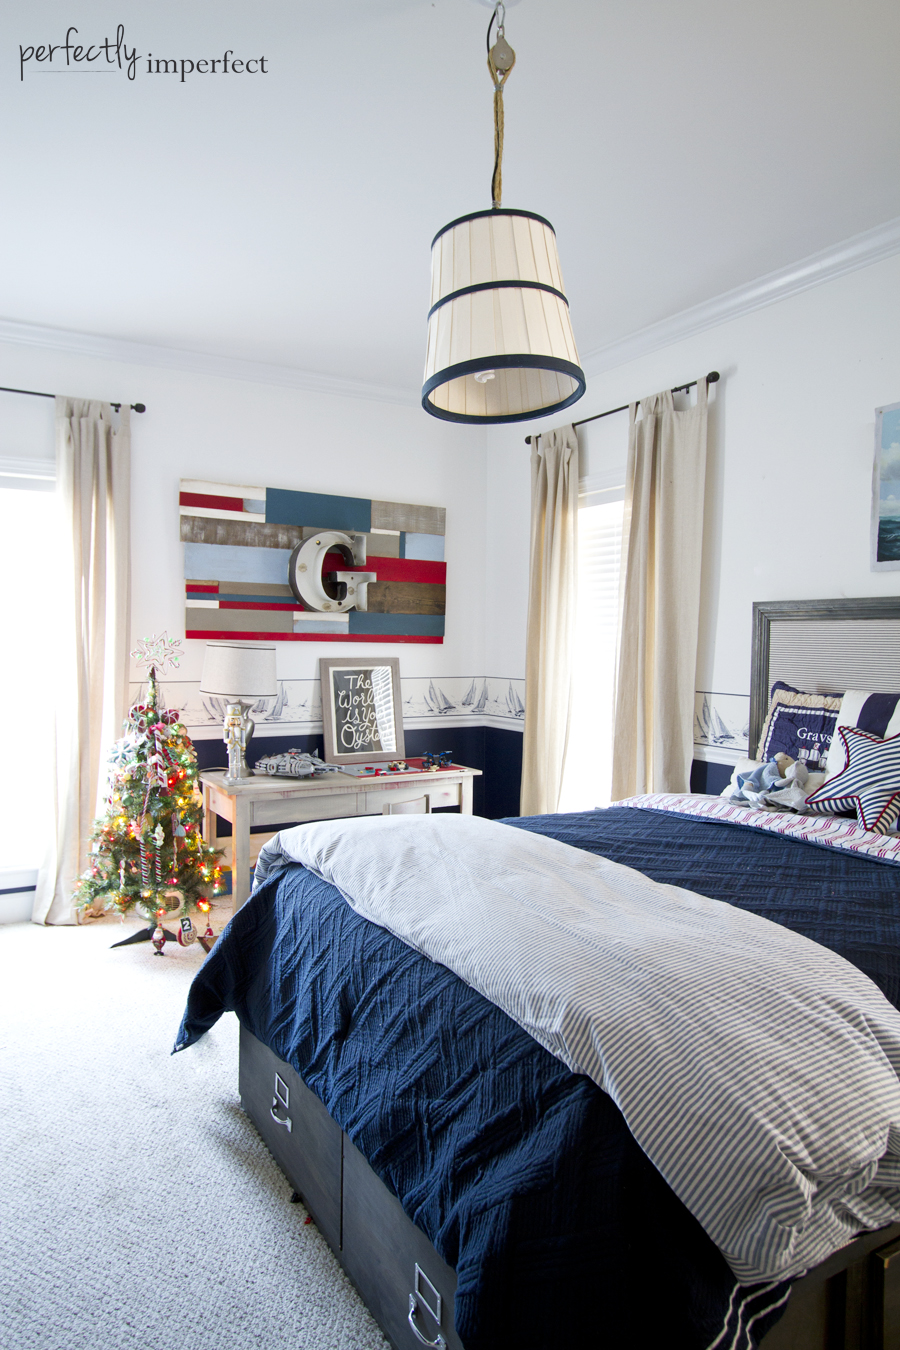 Perfectly Imperfect Boys Room Christmas